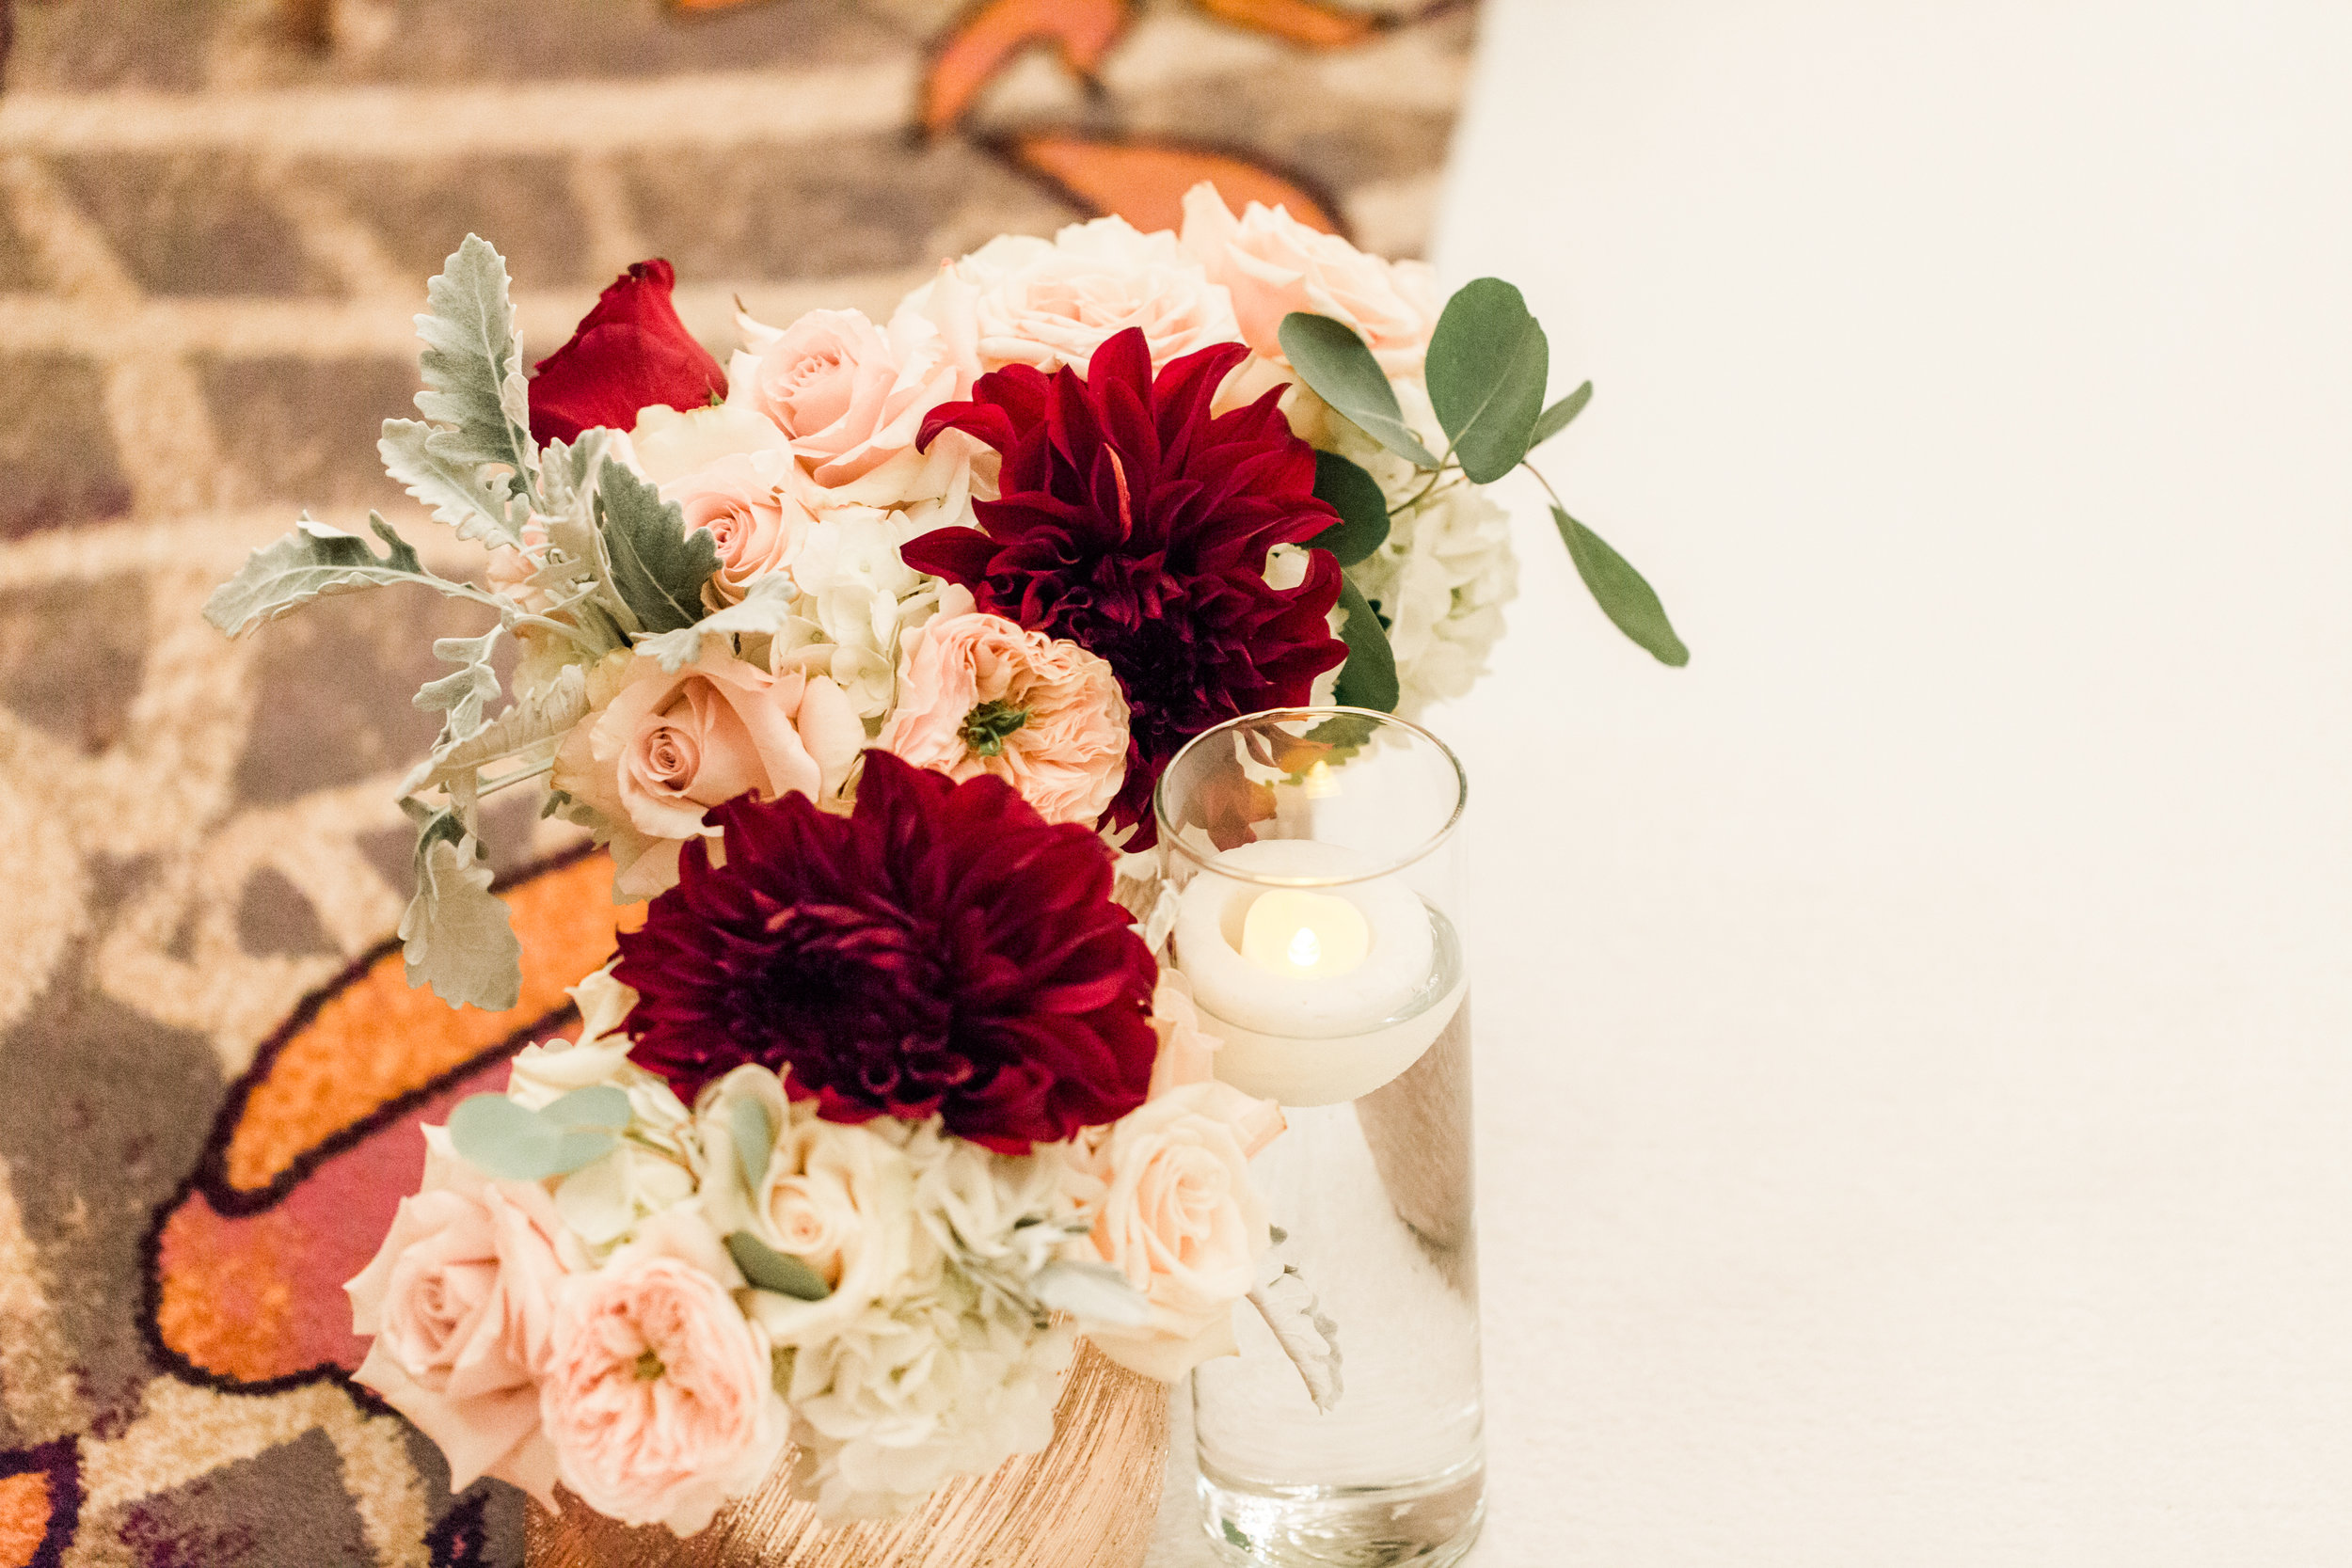 Red and pink wedding ceremony flowers.Luxury wedding at the Mandarin Oriental with a color scheme of white, blush, and pops of wine red produced by Las Vegas Wedding Planner Andrea Eppolito with photos by Stephen Salazar Photography.